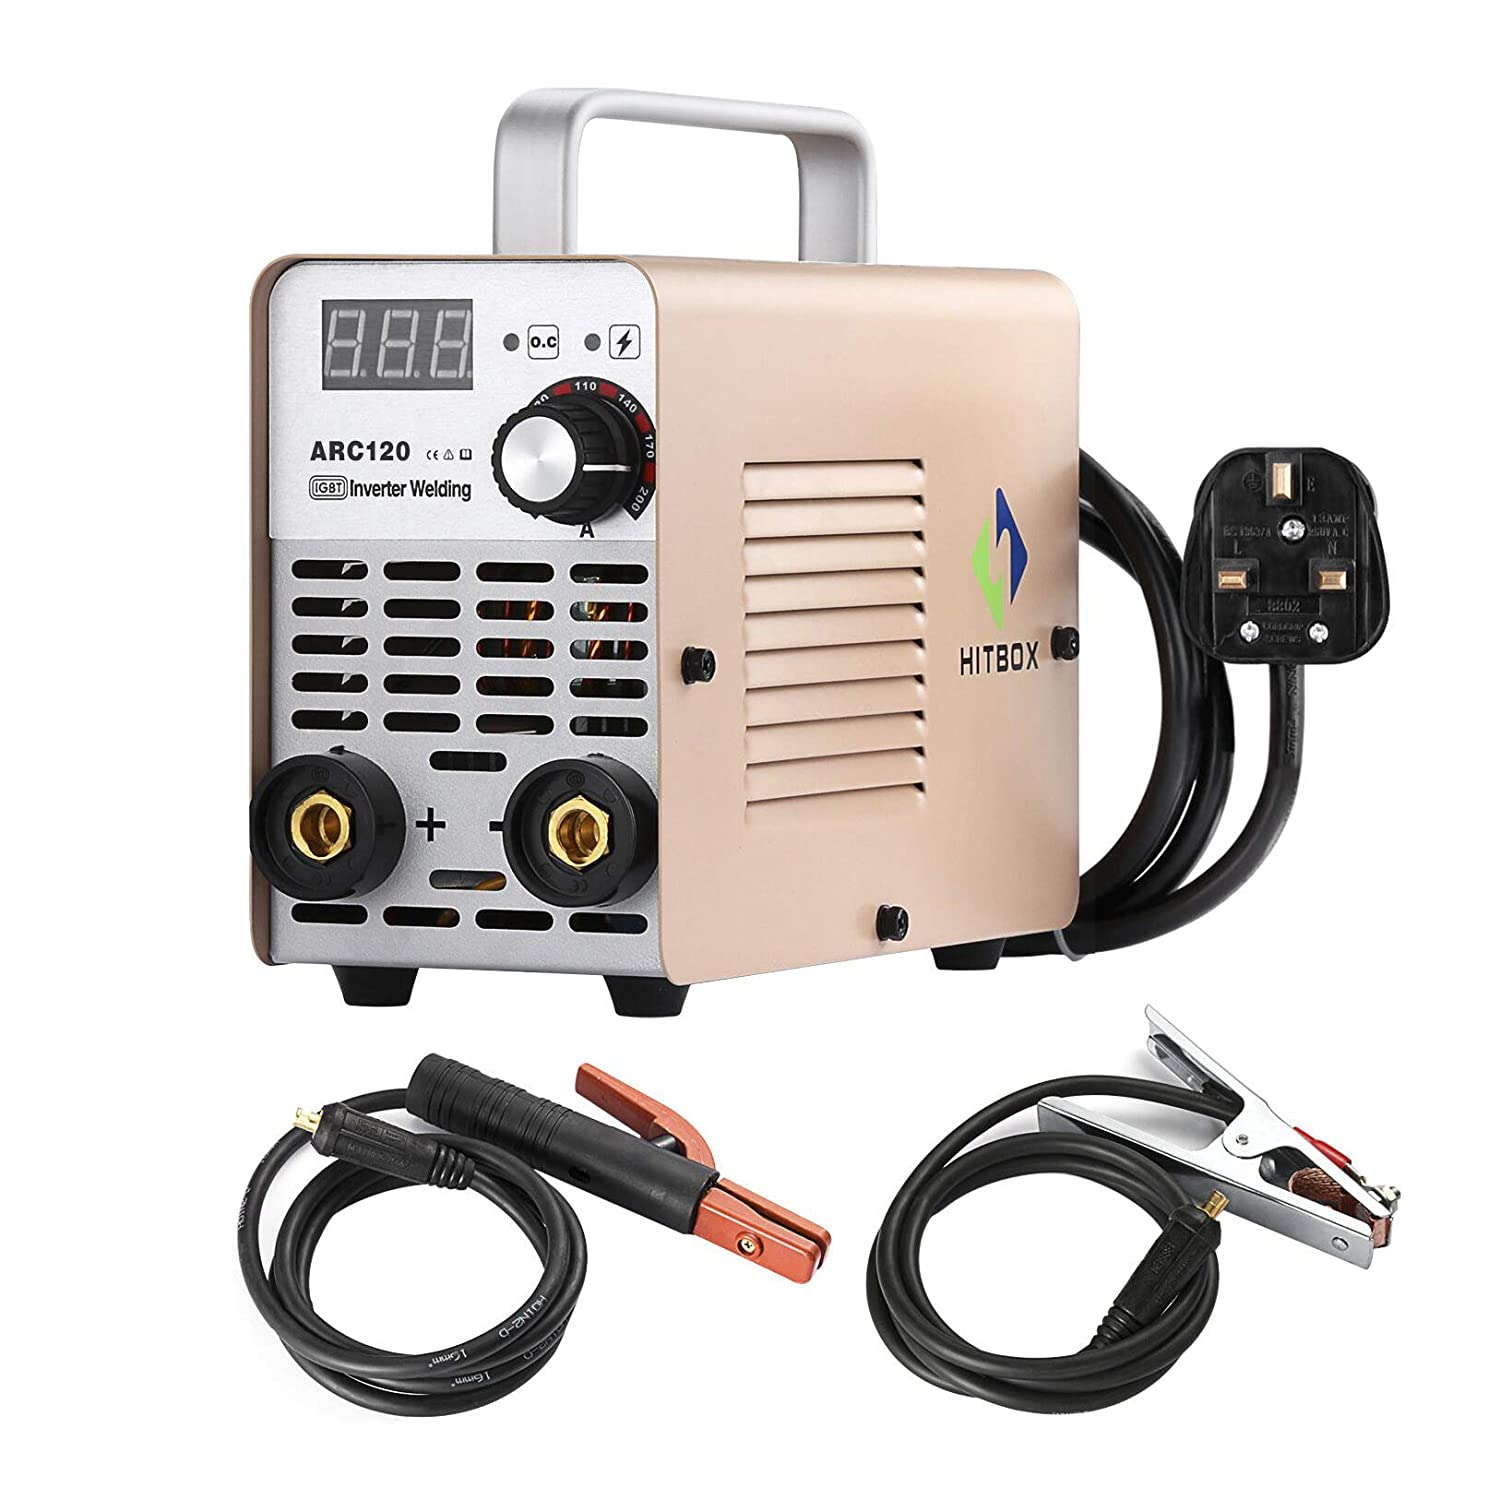 ARC Welder ARC120 DC Stick 220V MMA Inverter Welding Machine Mini Portable Style 2.5mm Rod Stick Welder with Earth Clamp Electrode and Toolbag HITBOX SHENZHEN UNITWELD WELDING AND MOTOR